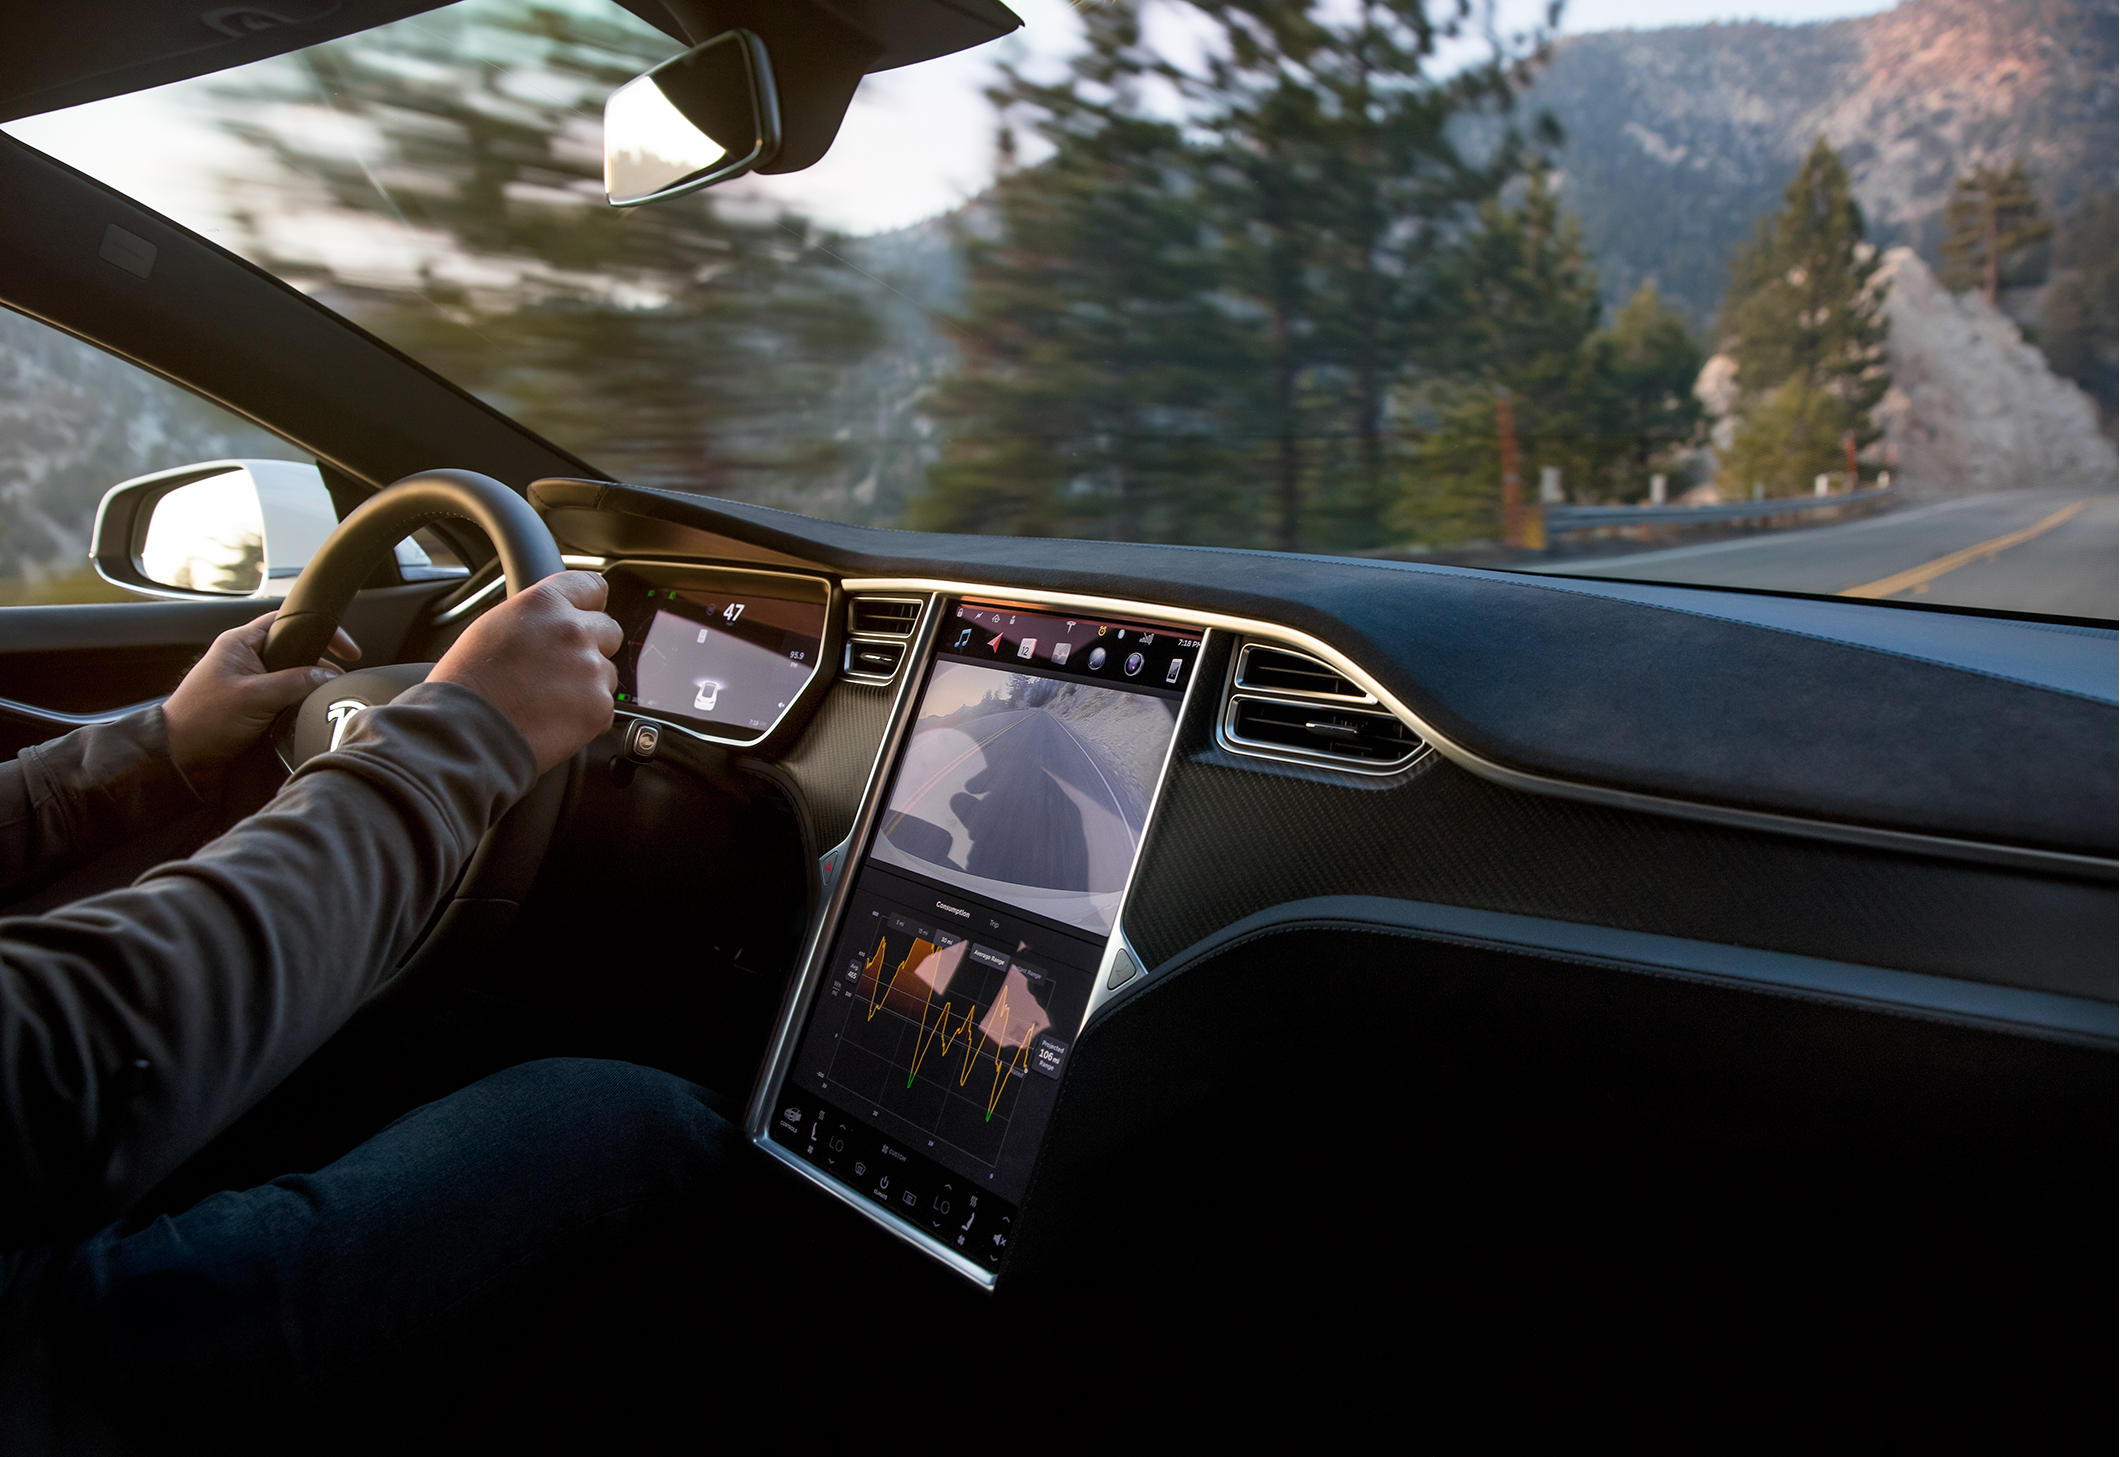 Tesla's Over-The-Air Software Updates Have Big Auto Playing